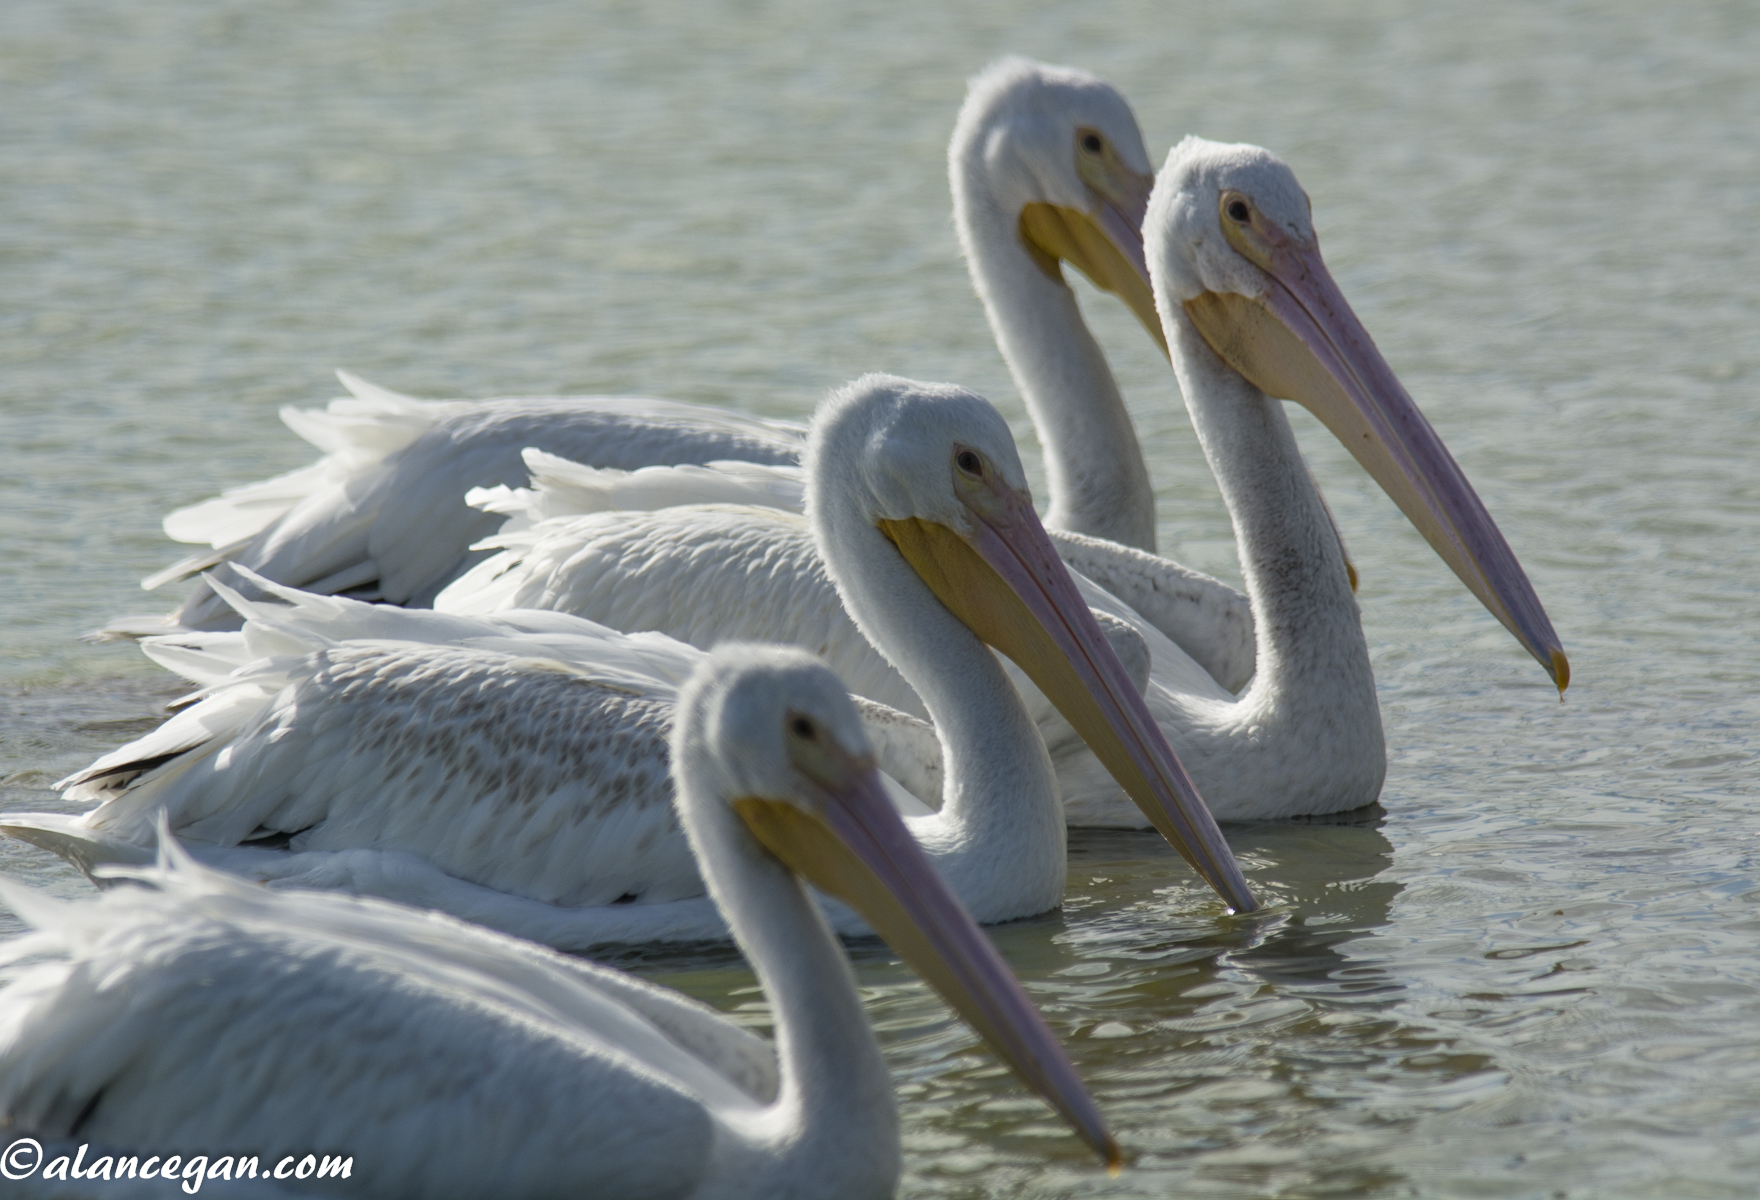 Photograph of a group of White Pelicans